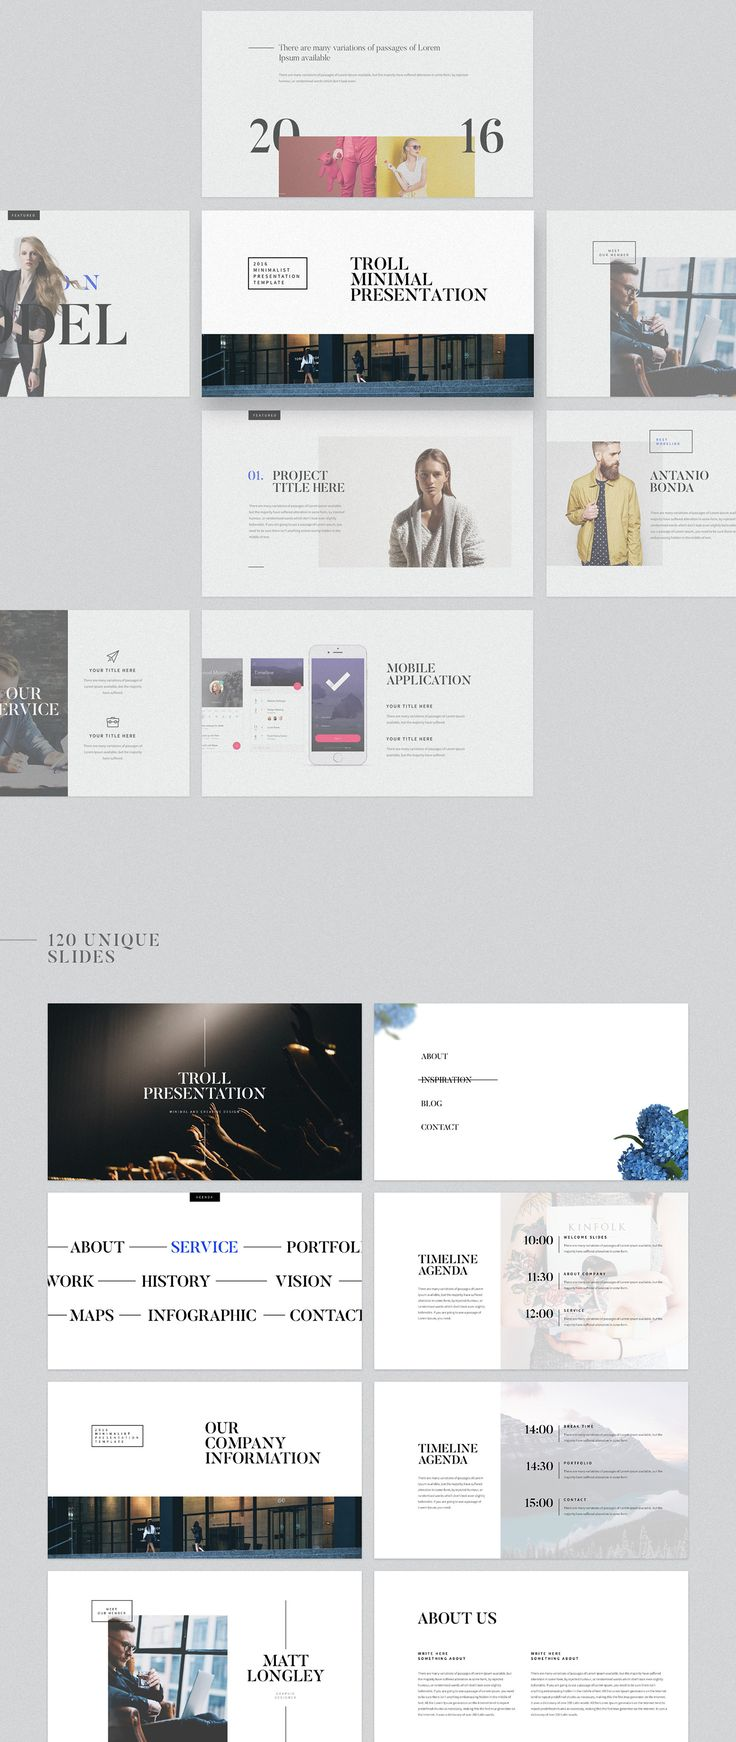 kaizen powerpoint templates images - templates example free download, Presentation templates